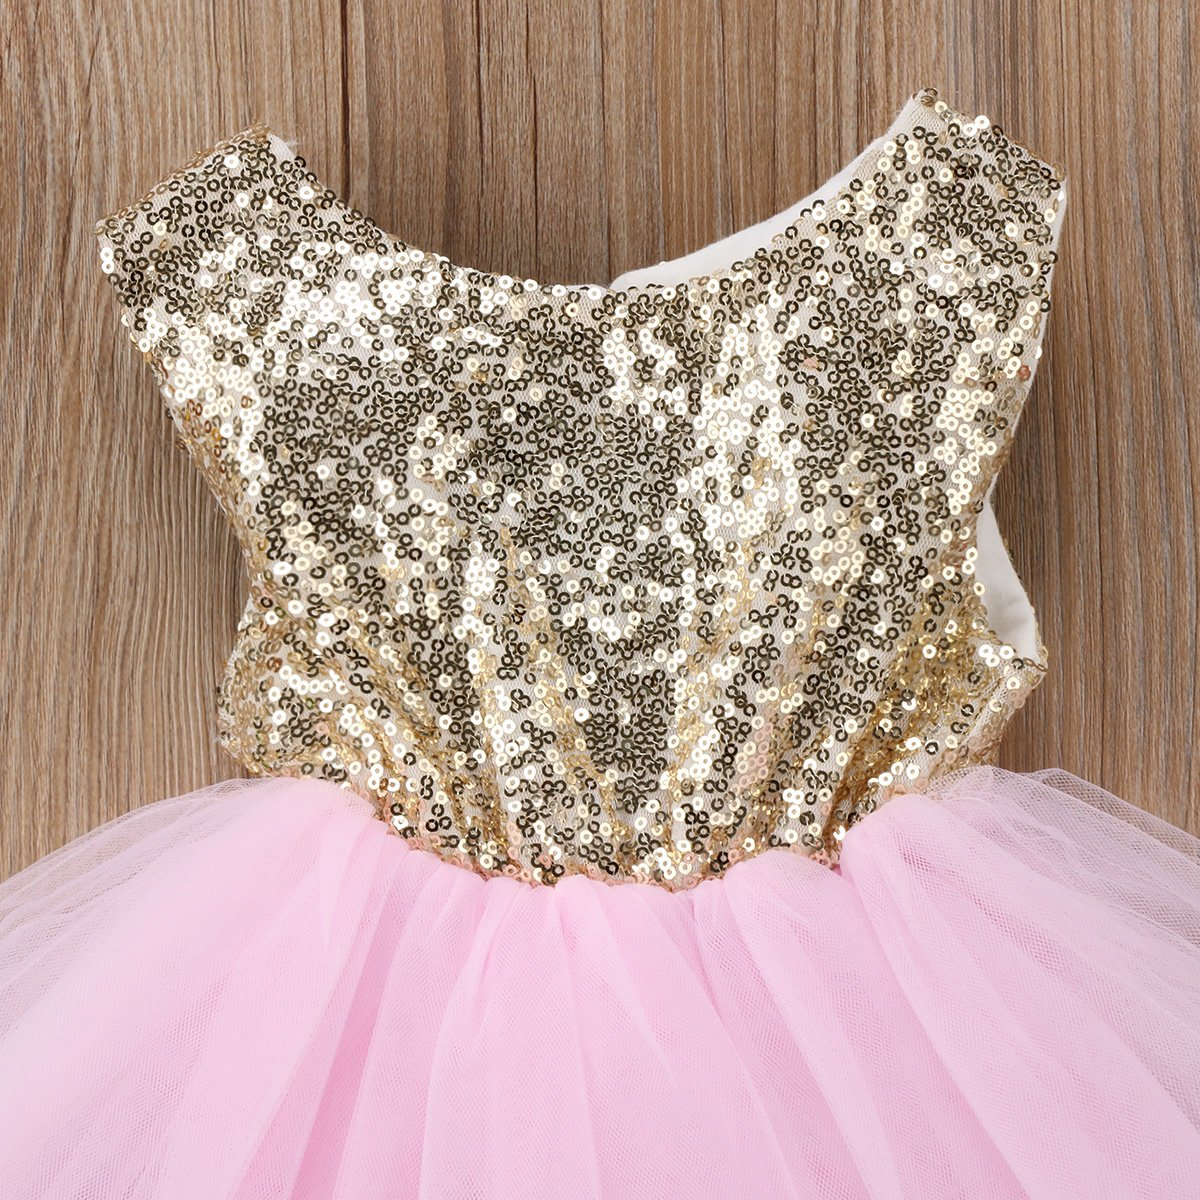 Emmababy Baby Girls Sleeveless Flower Wedding Pageant Princess Bowknot Party Dress Infant Lace Tutu Dresses 0-5Years